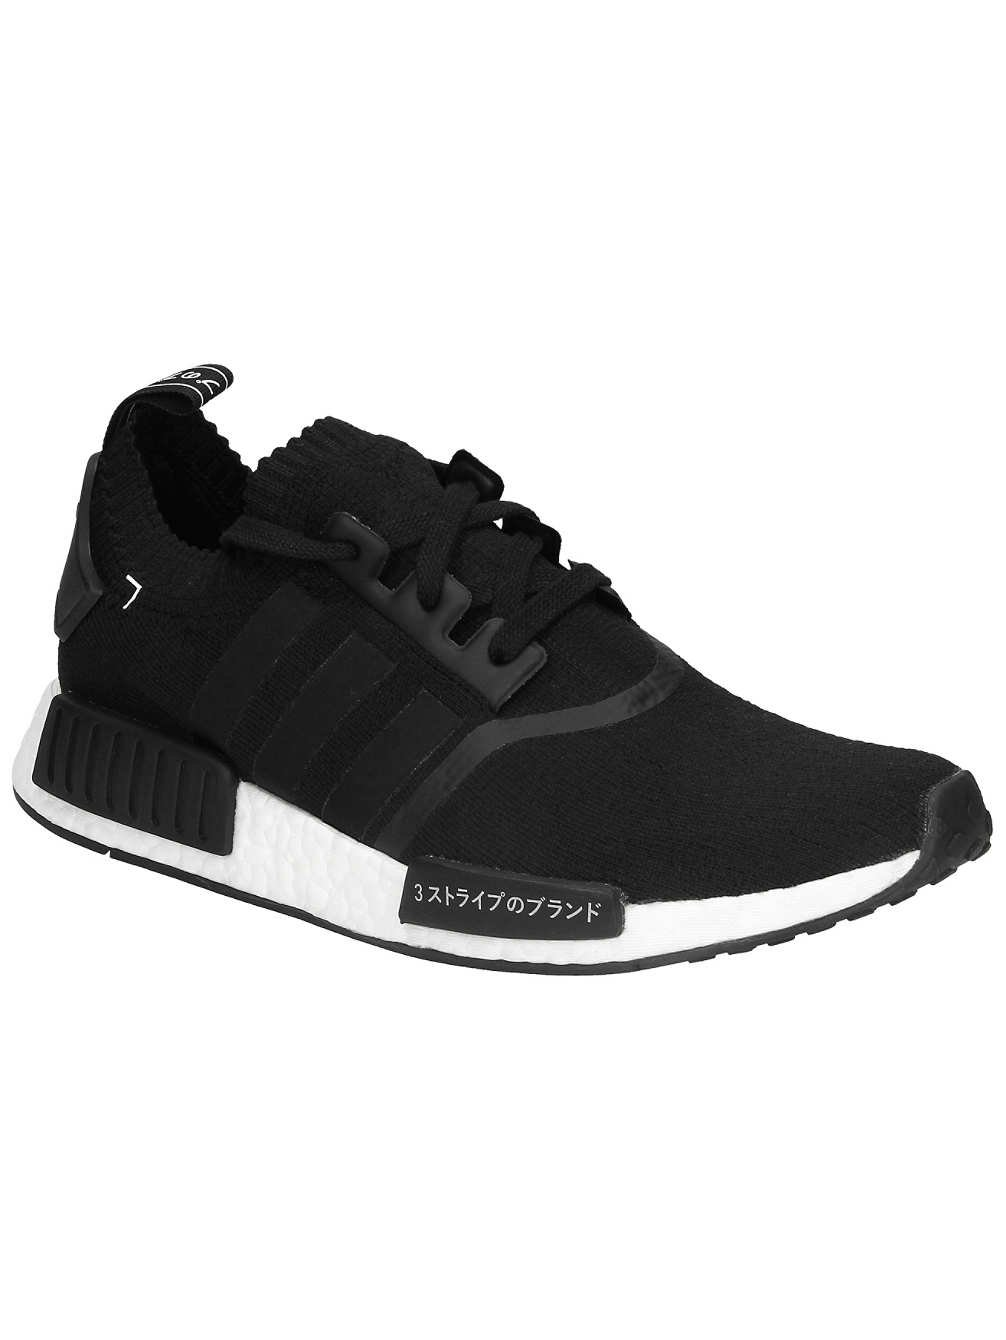 Amazon Com Adidas Nmd R1 Pk Japan Boost S81847 Size 11